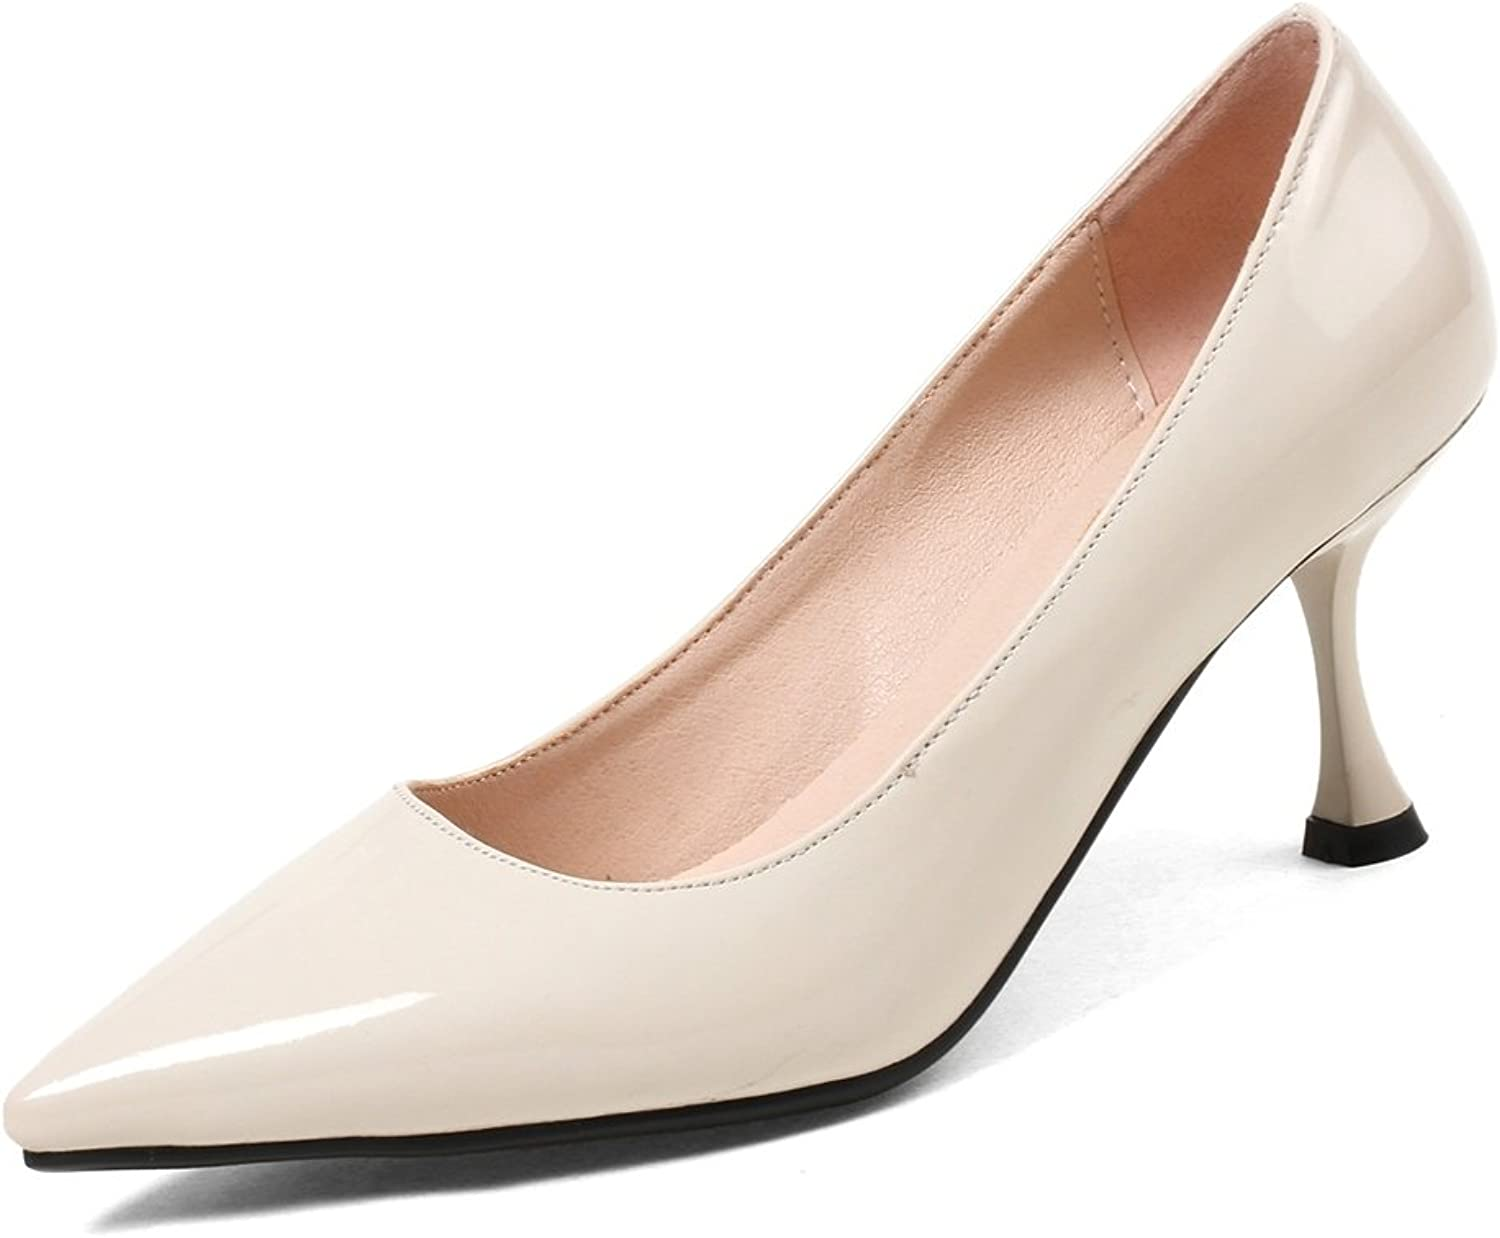 DecoStain Women's Elegant Pointed Toe Patent Leather Slip-on High Thin Heels Daily Working Pumps shoes